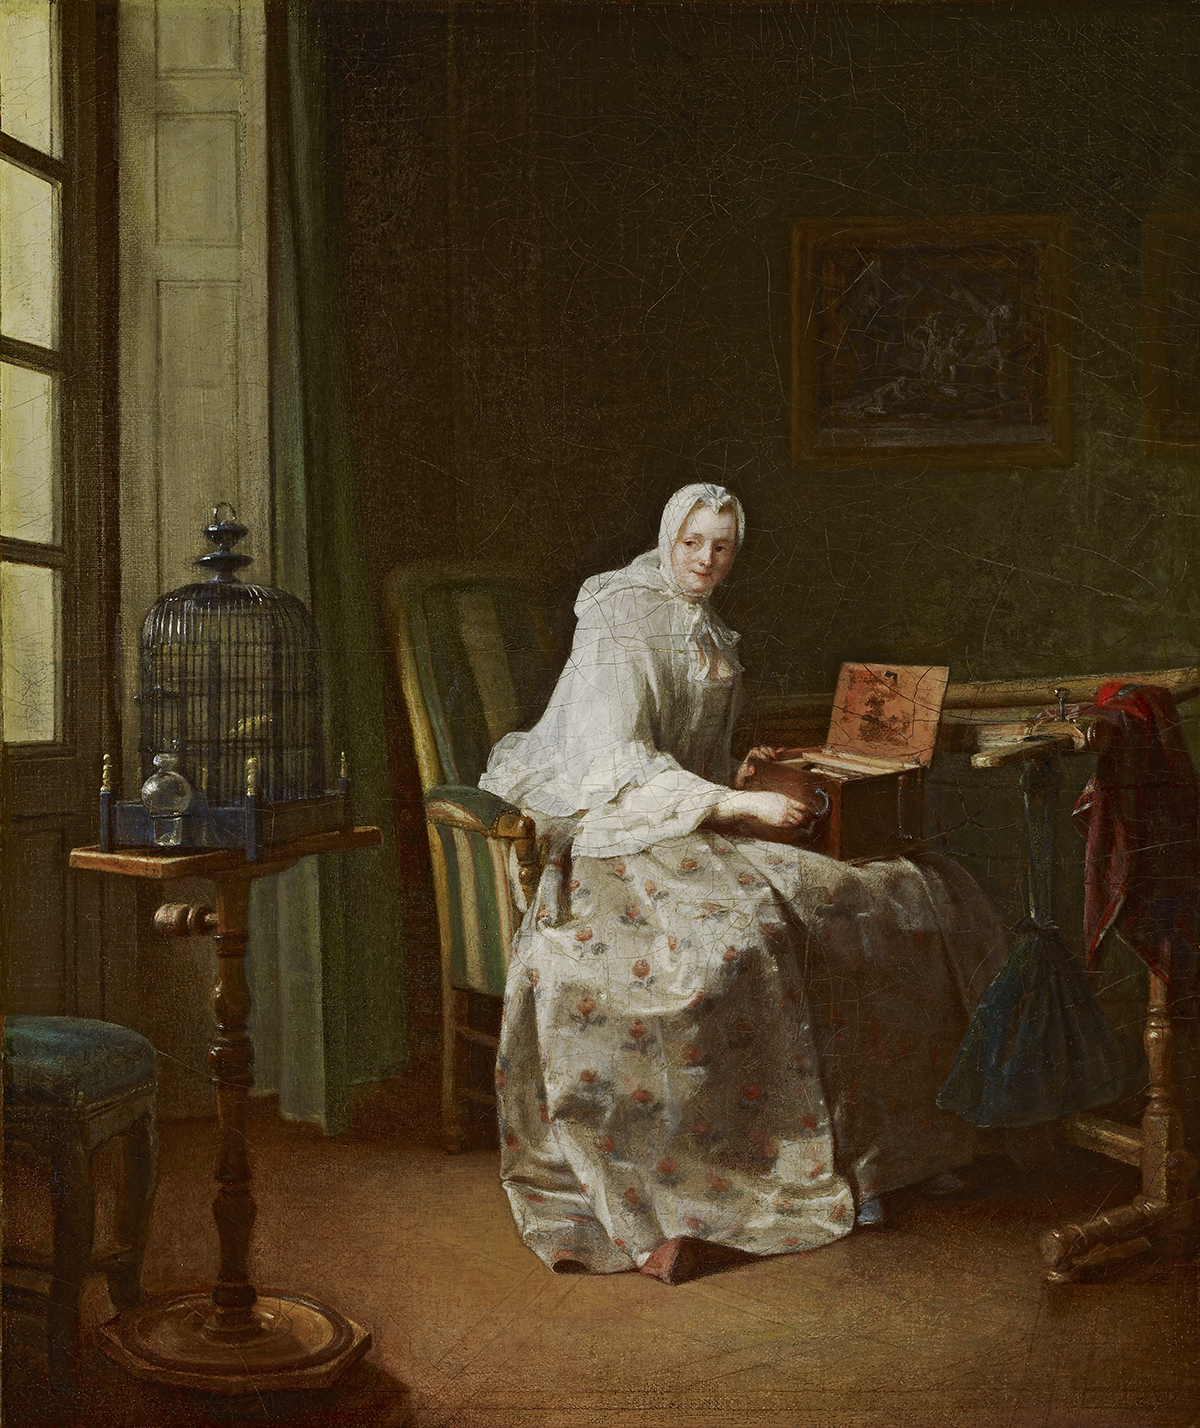 Oil painting of a seated woman in a white dress and bonnet playing a bird-organ in a room with caged bird